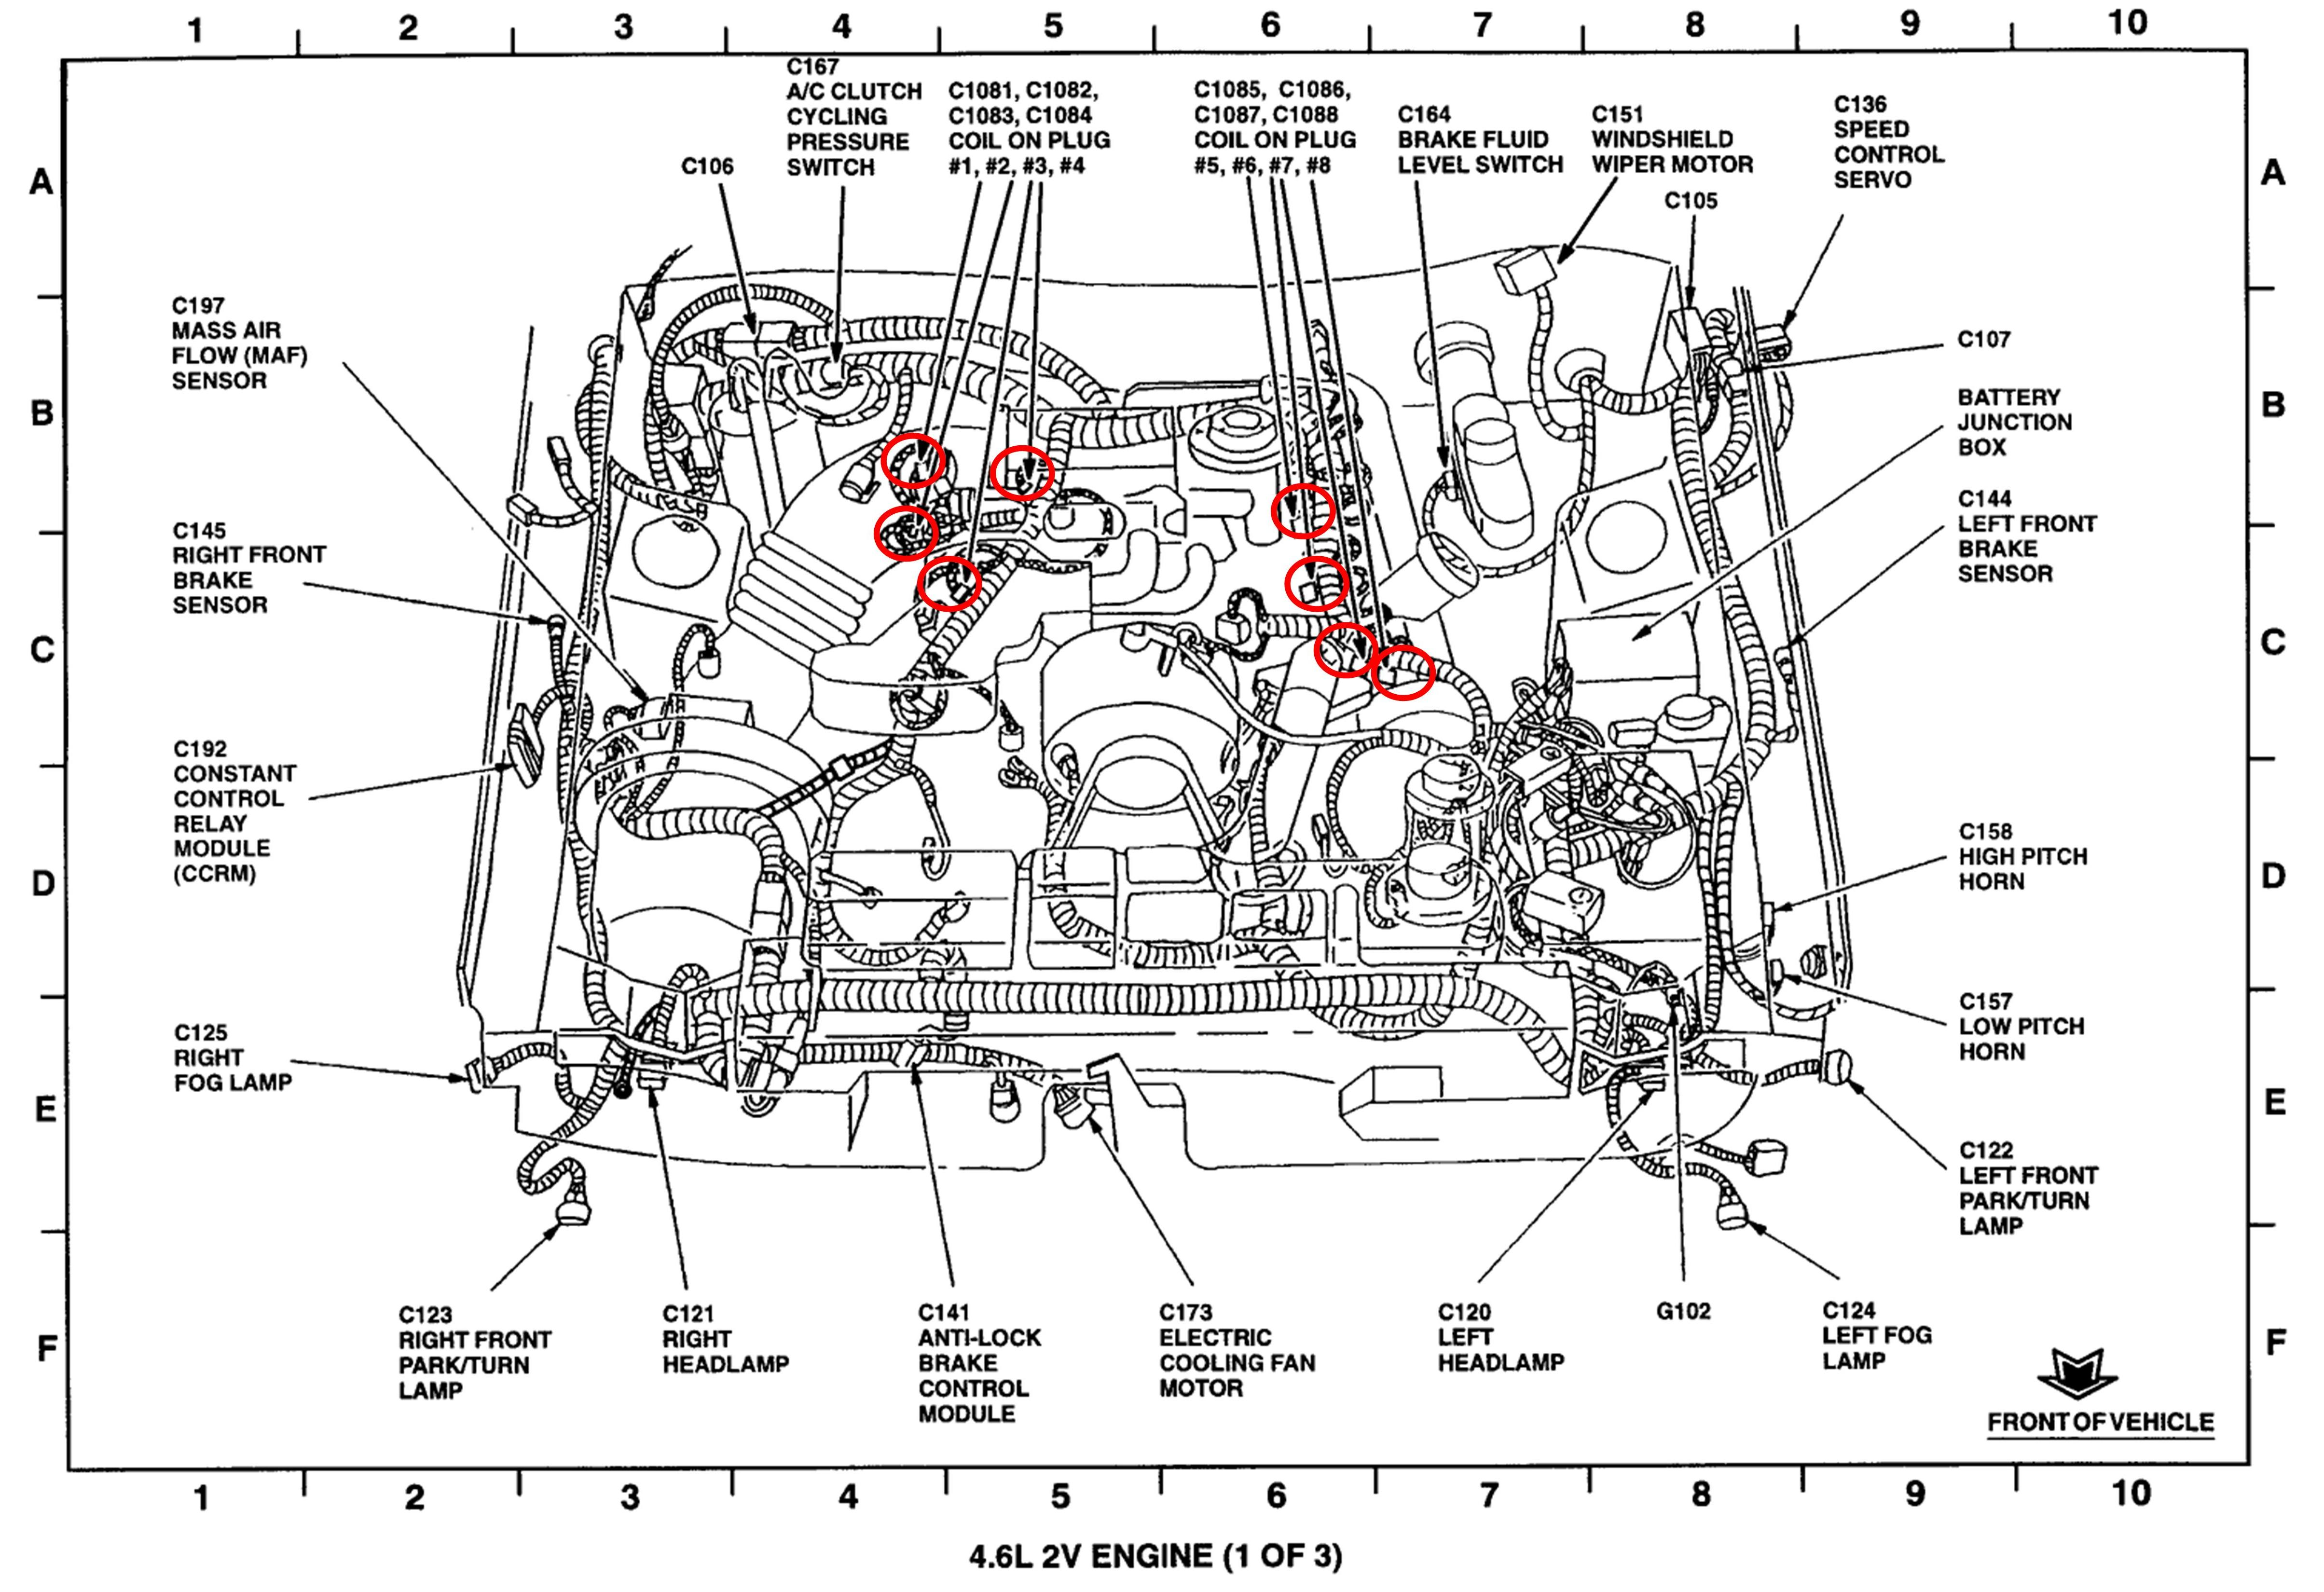 2001 Olds Alero Power Window Switch Wiring Diagram. f3e7bc